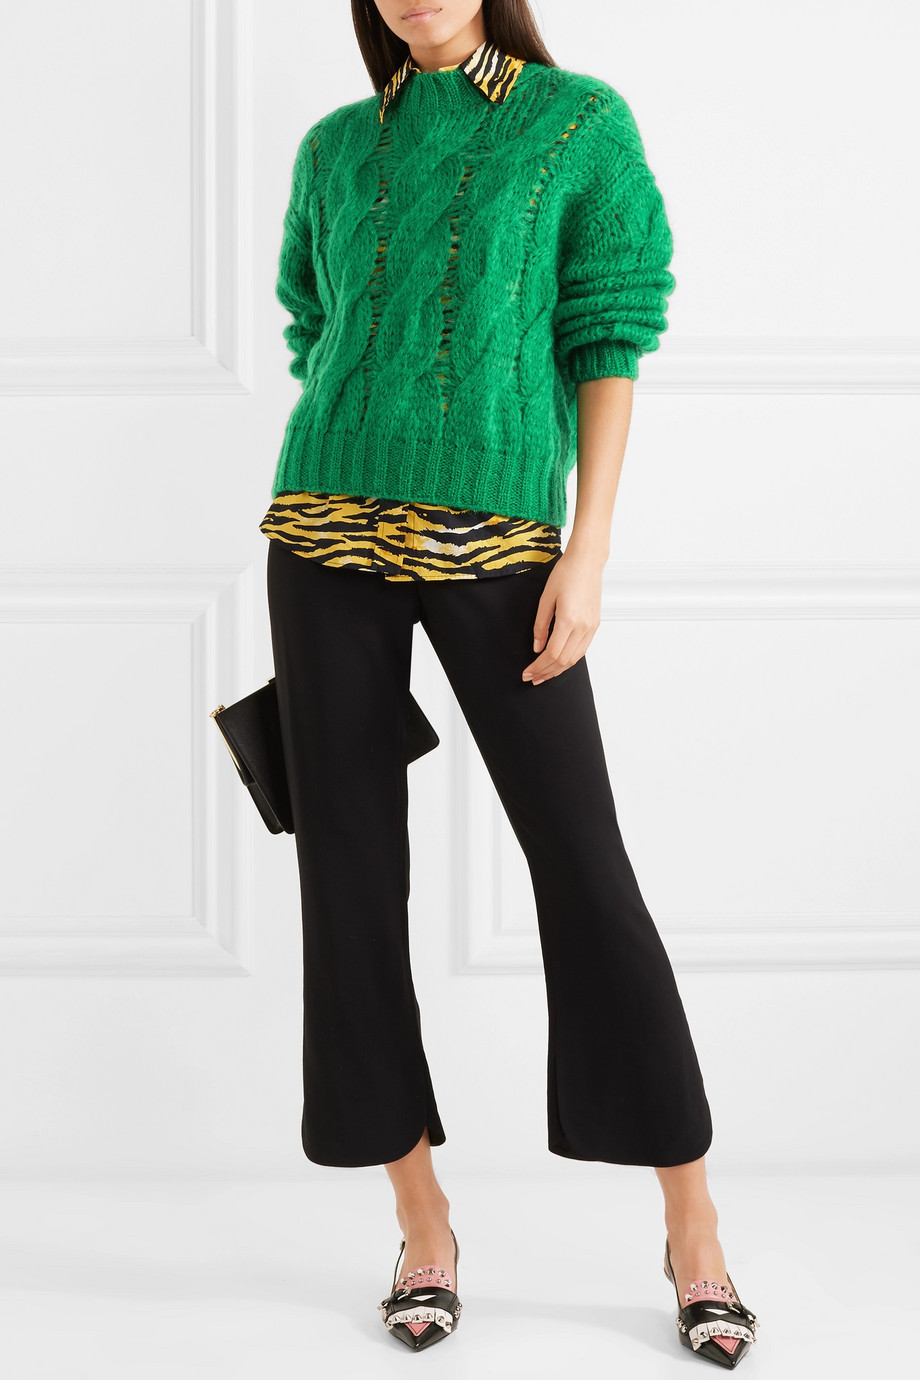 Prada Cable-knit mohair-blend sweater $710